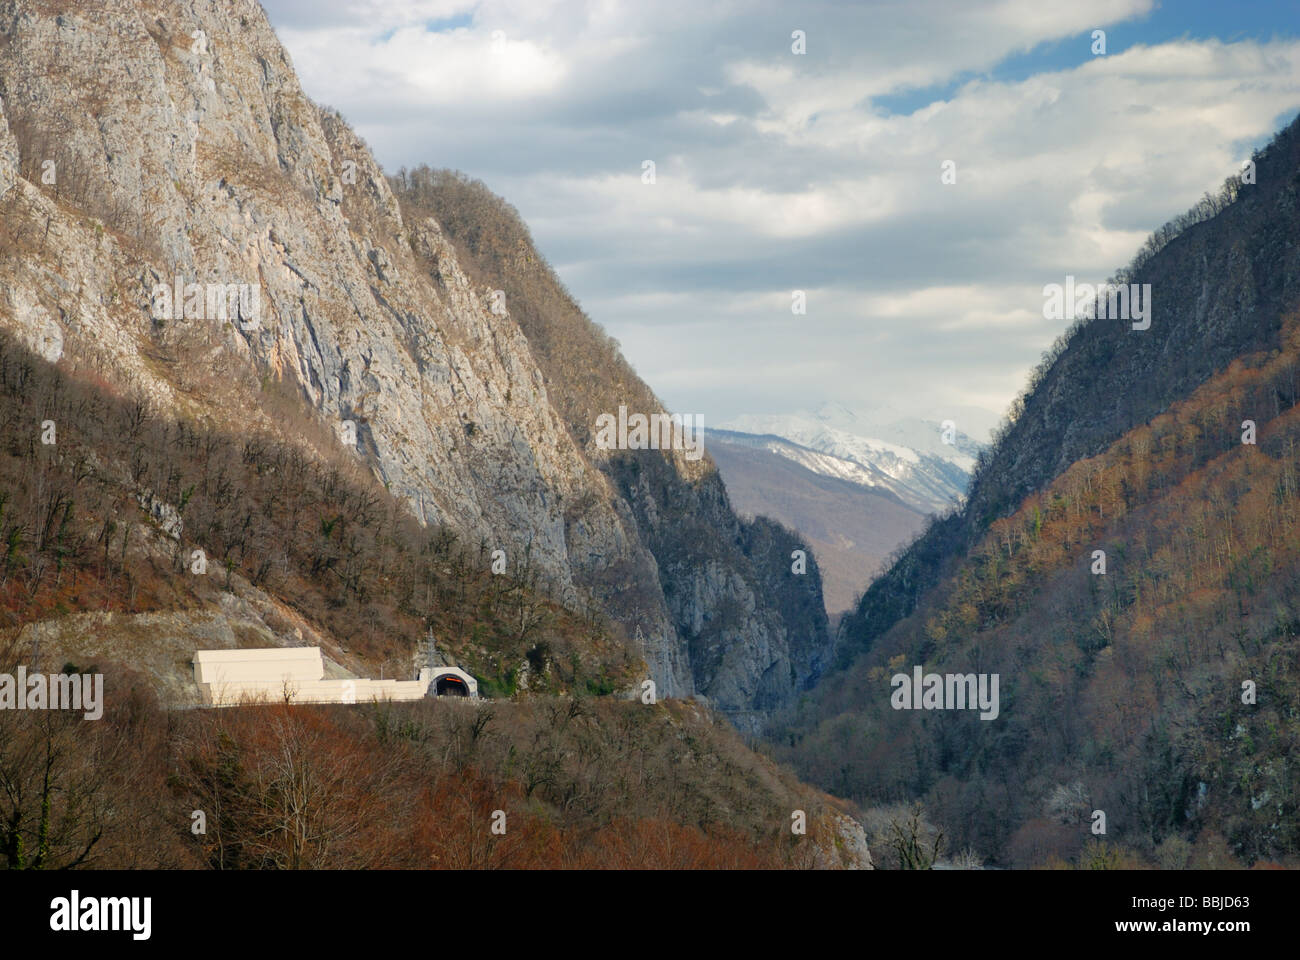 Road and tunnel in mountain gorge. Road from Sochi to Krasnaya Polyana - Stock Image